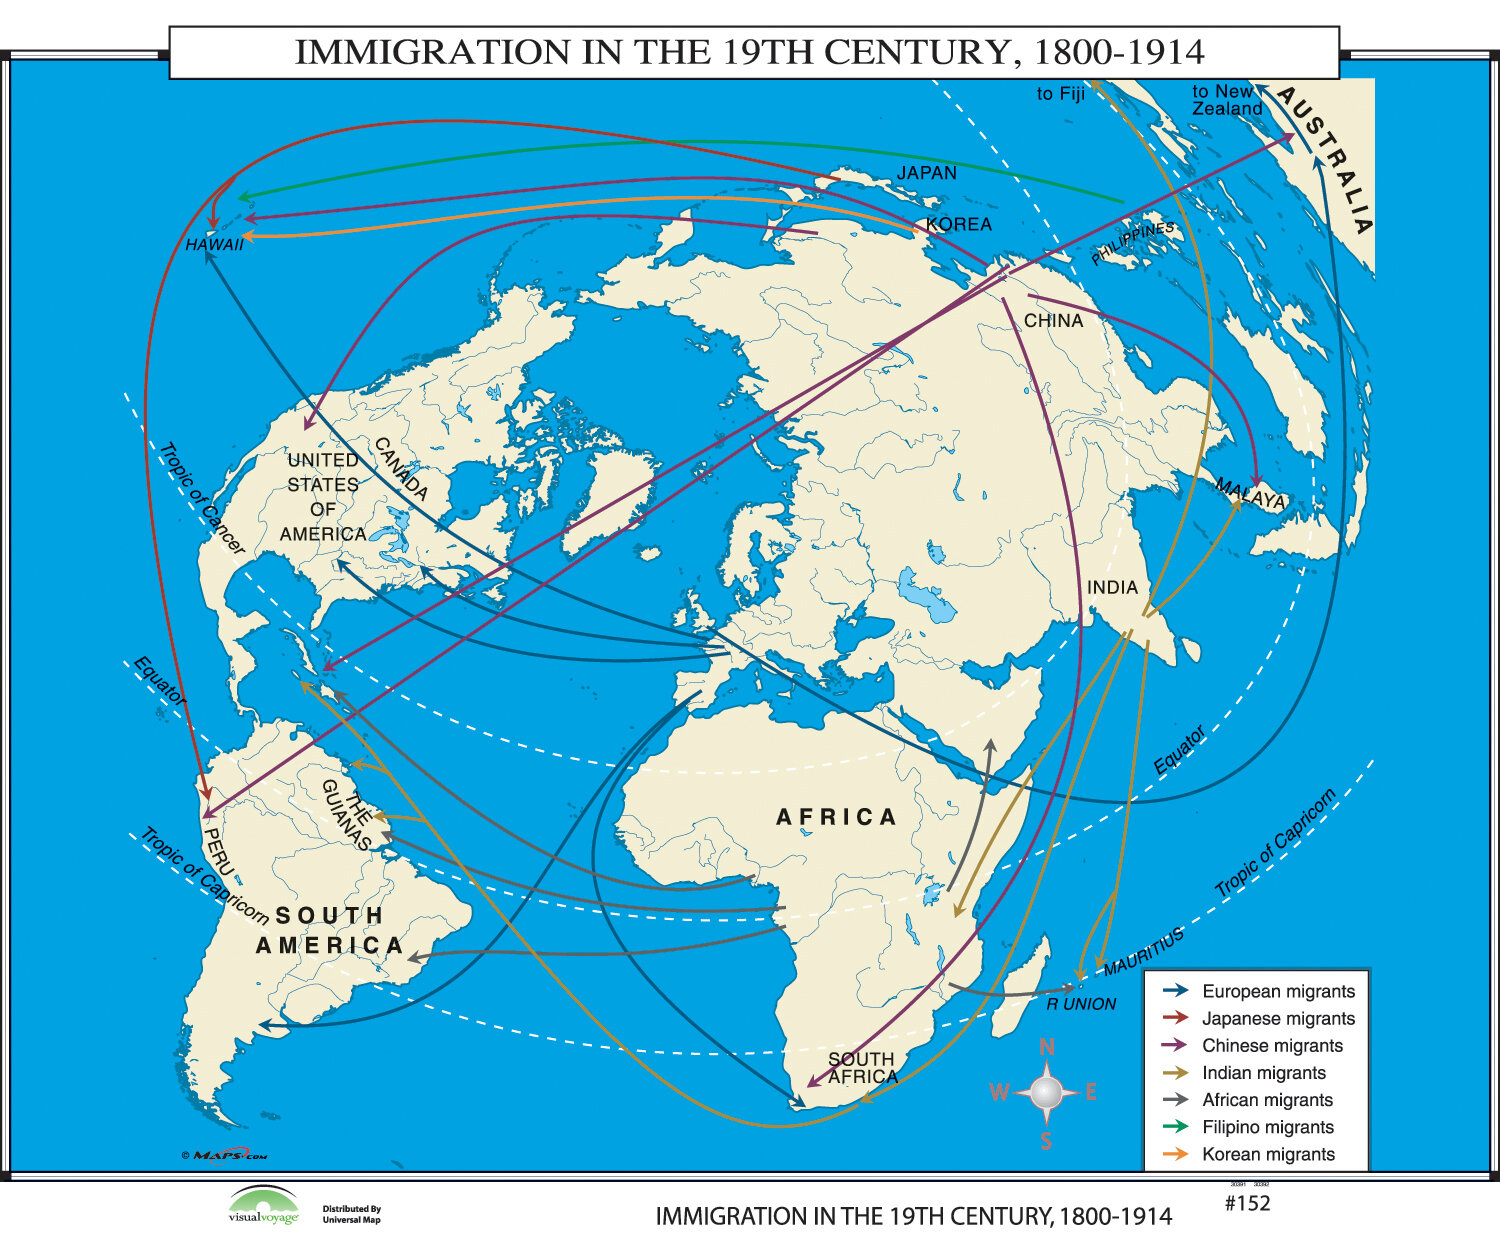 Universal Map World History Wall Maps - Immigration in 19th Century ...